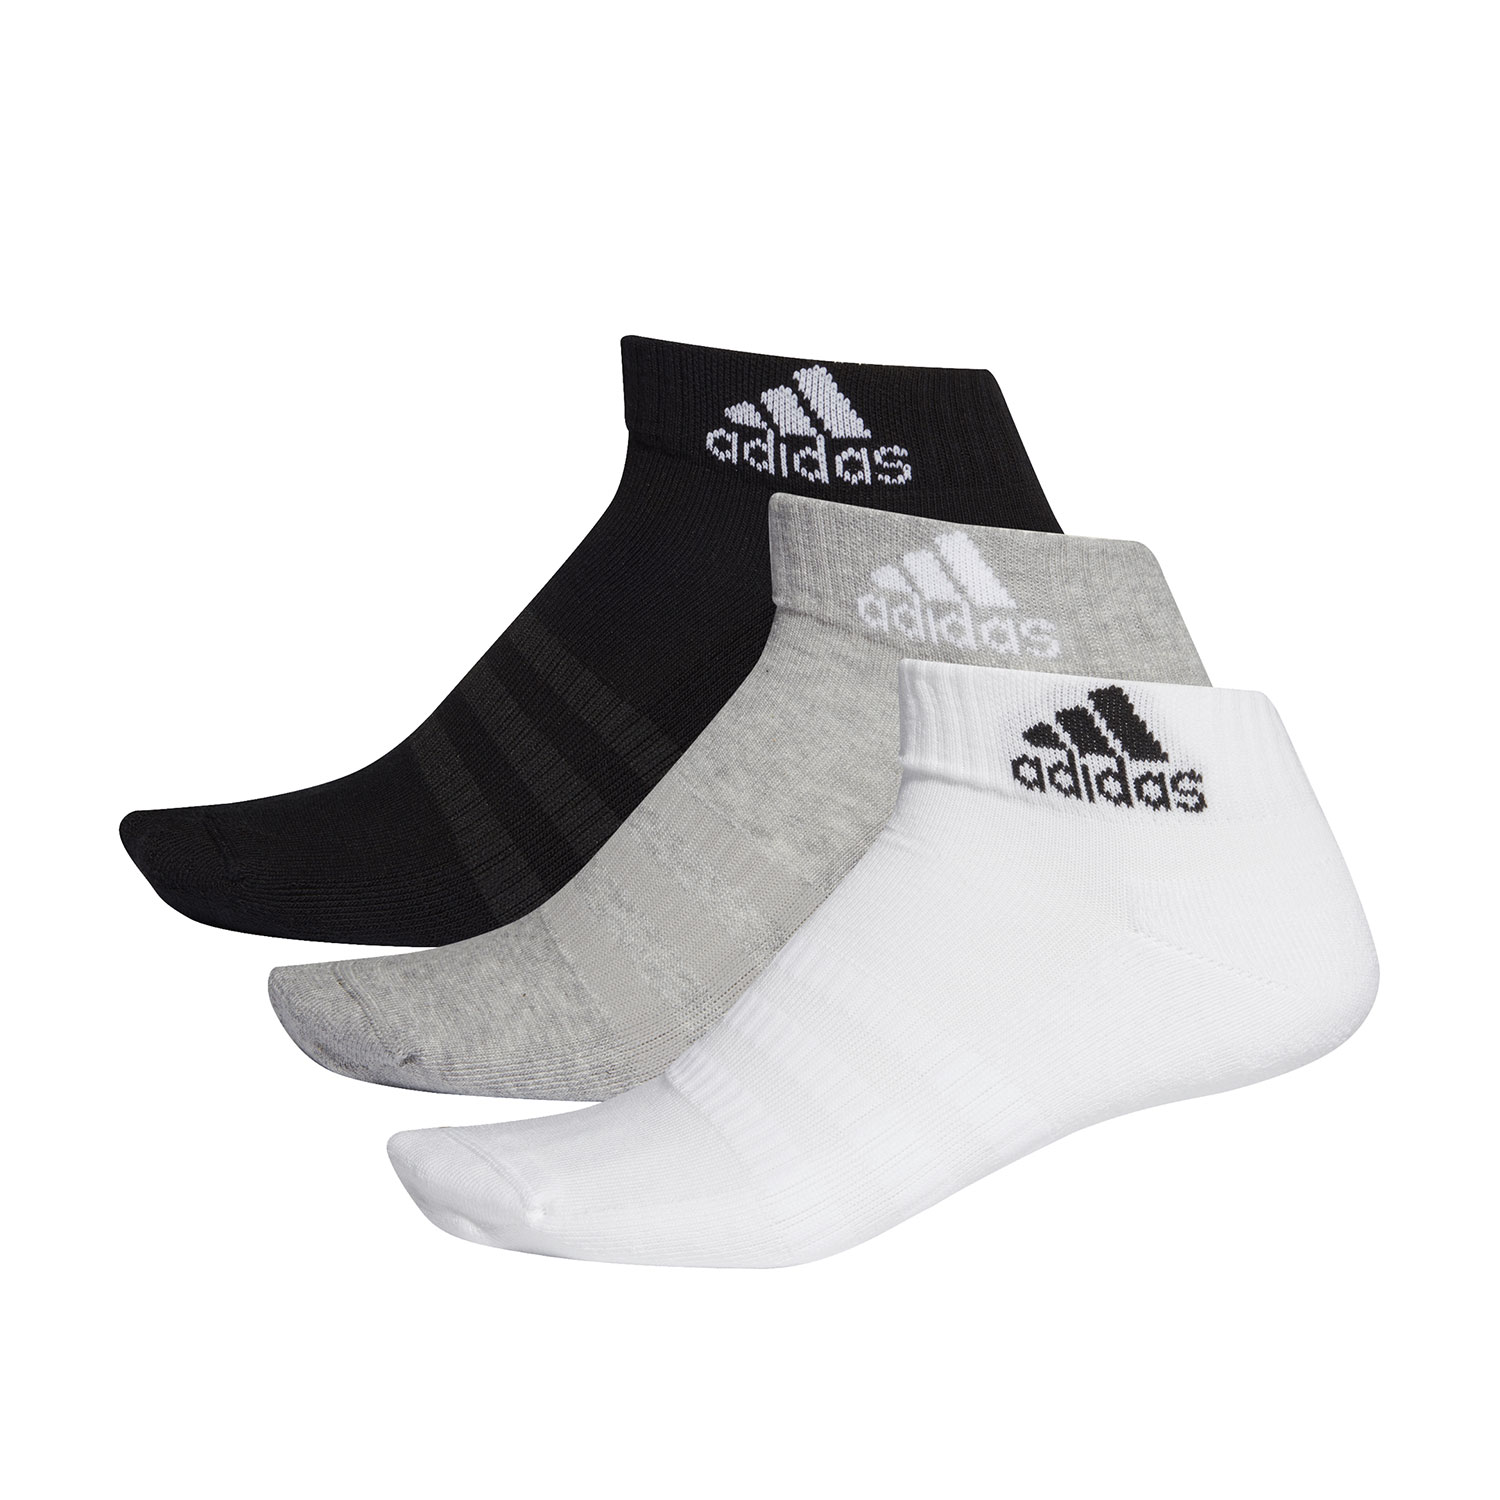 Adidas Cushioned Ankle x 3 Socks - Medium Grey Heather/White/Black